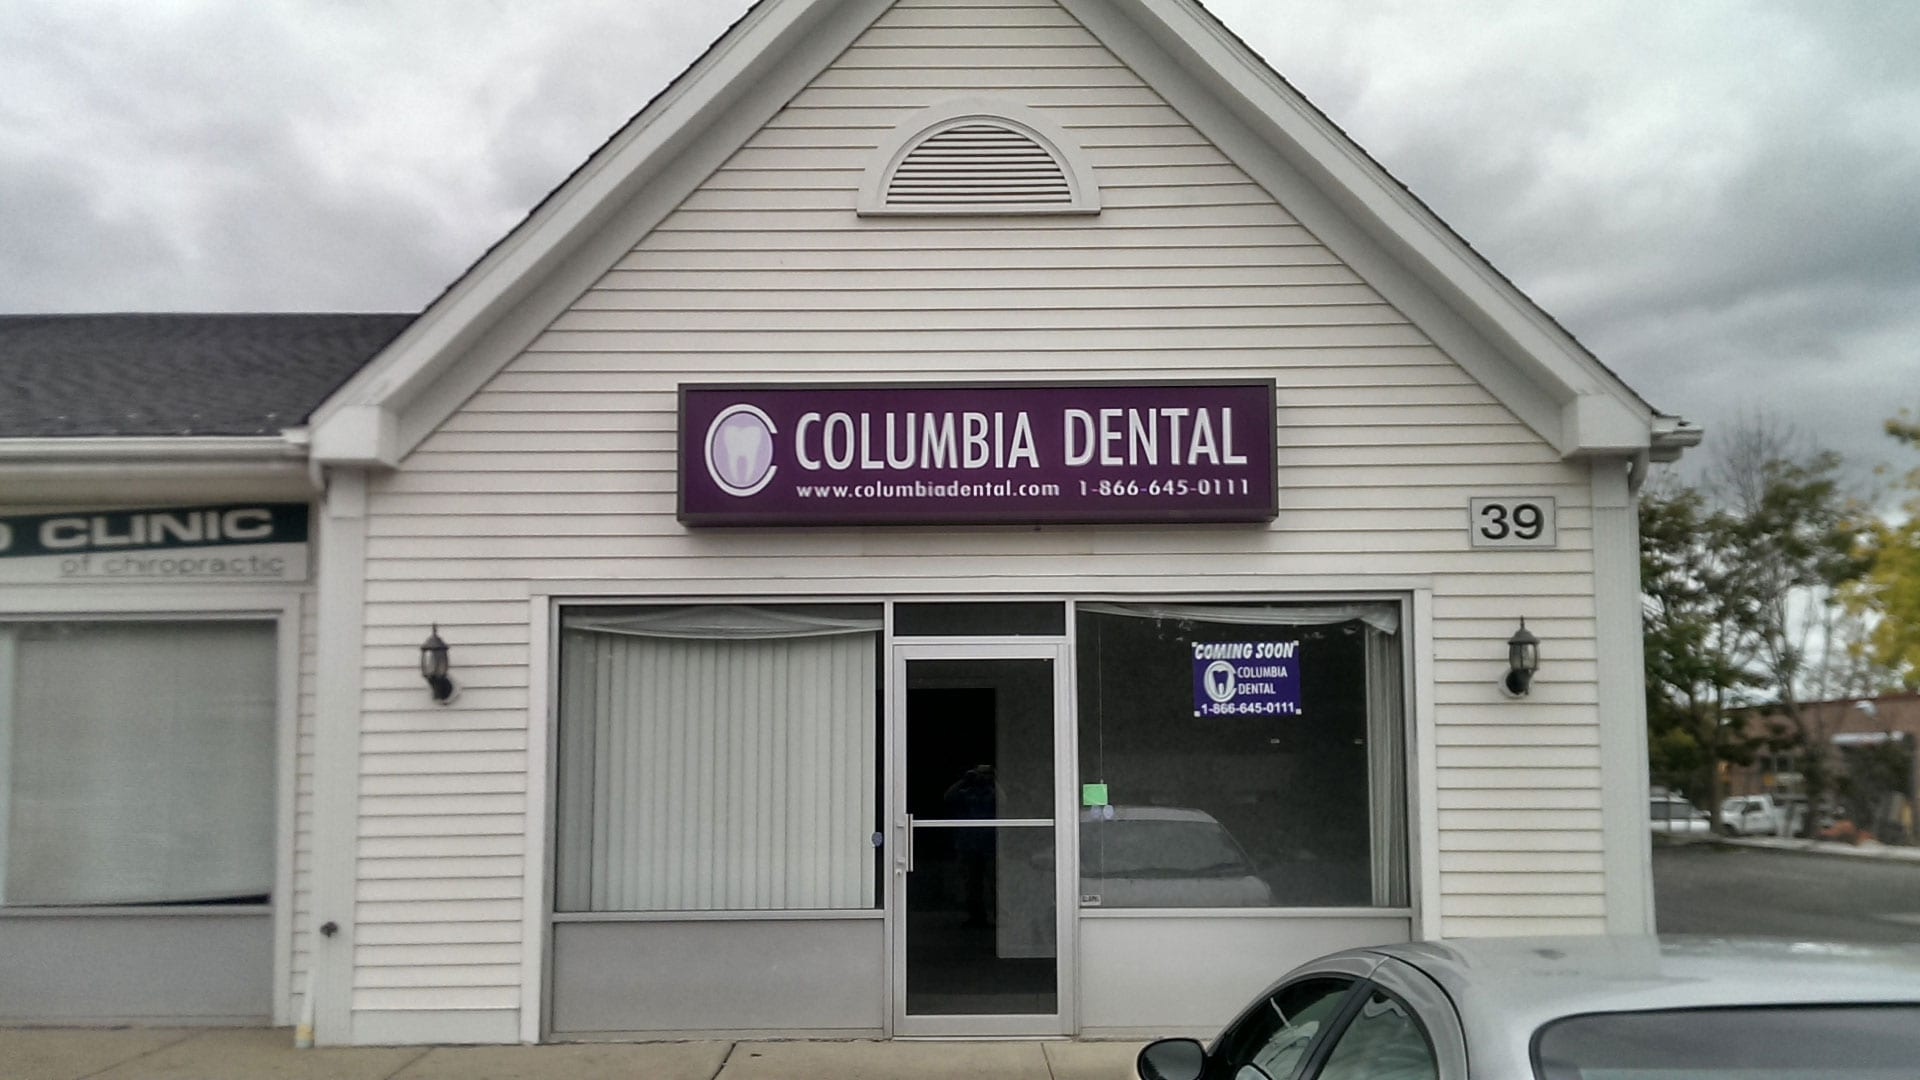 Columbia Dental - Outdoor Lighted Cabinet Sign